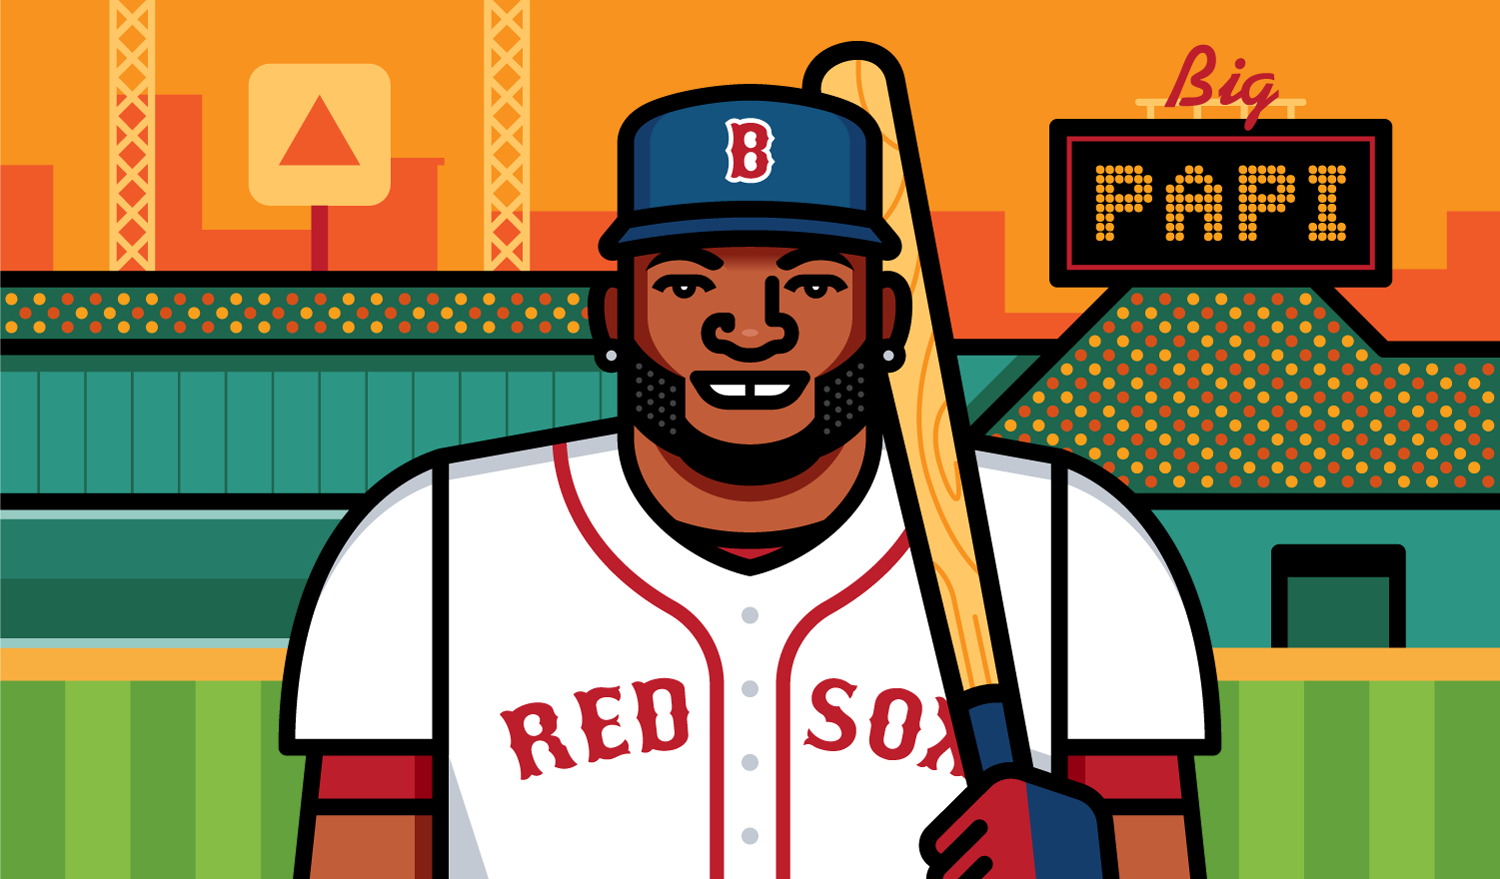 stein-boston-red-sox-ortiz.png